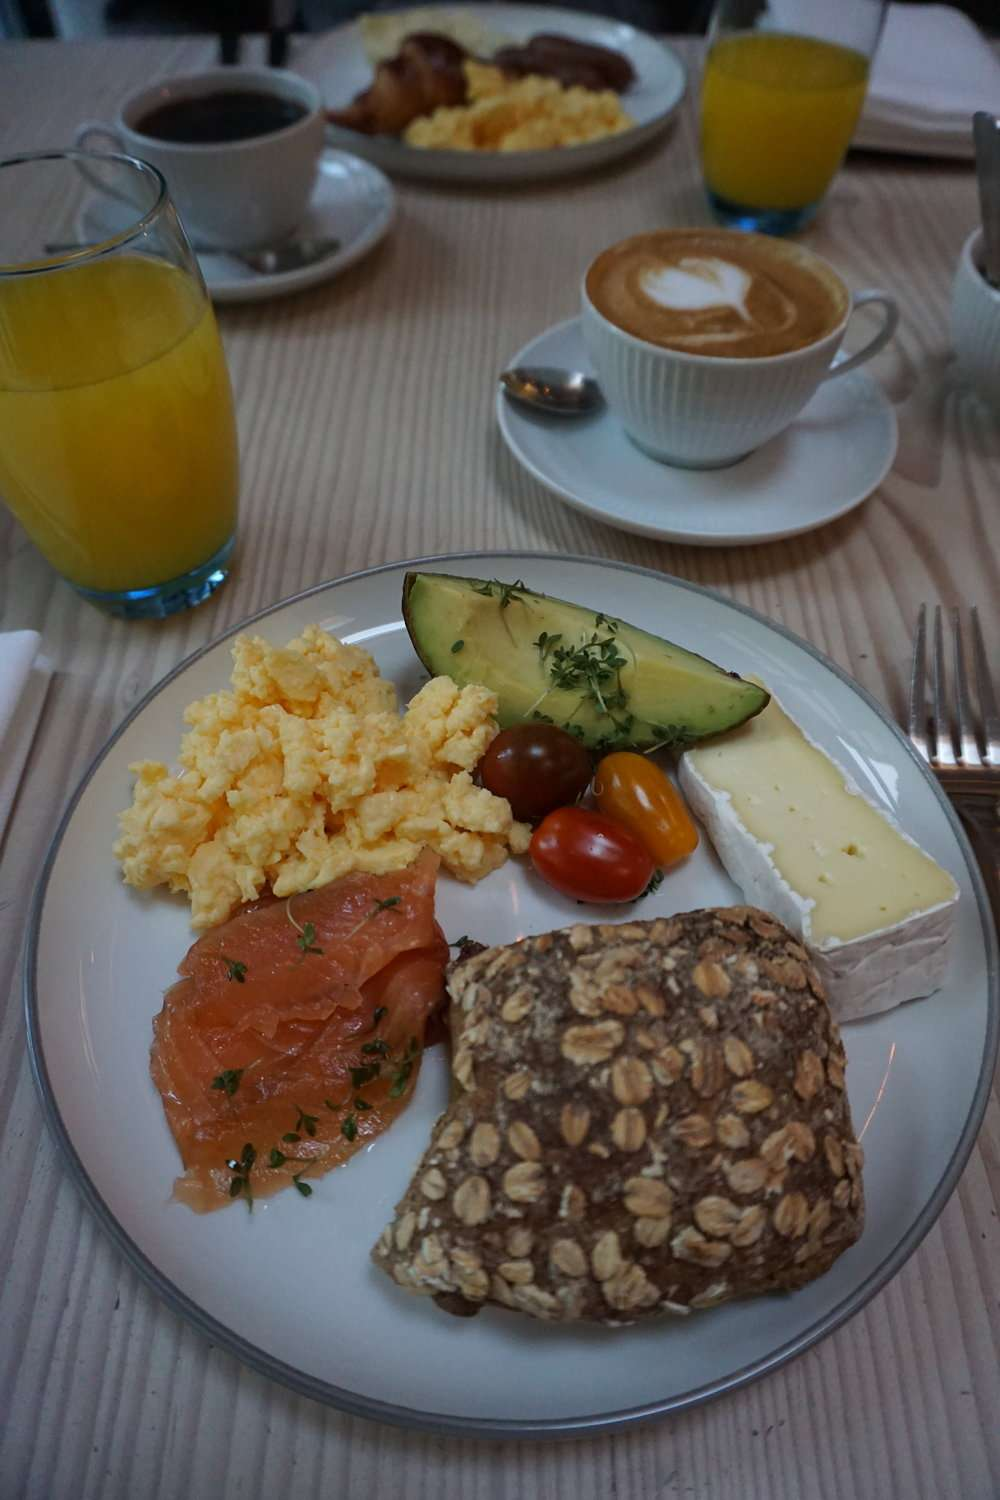 buffet breakfast at Nobis Hotel Copenhagen includes smoked salmon, eggs and cheese